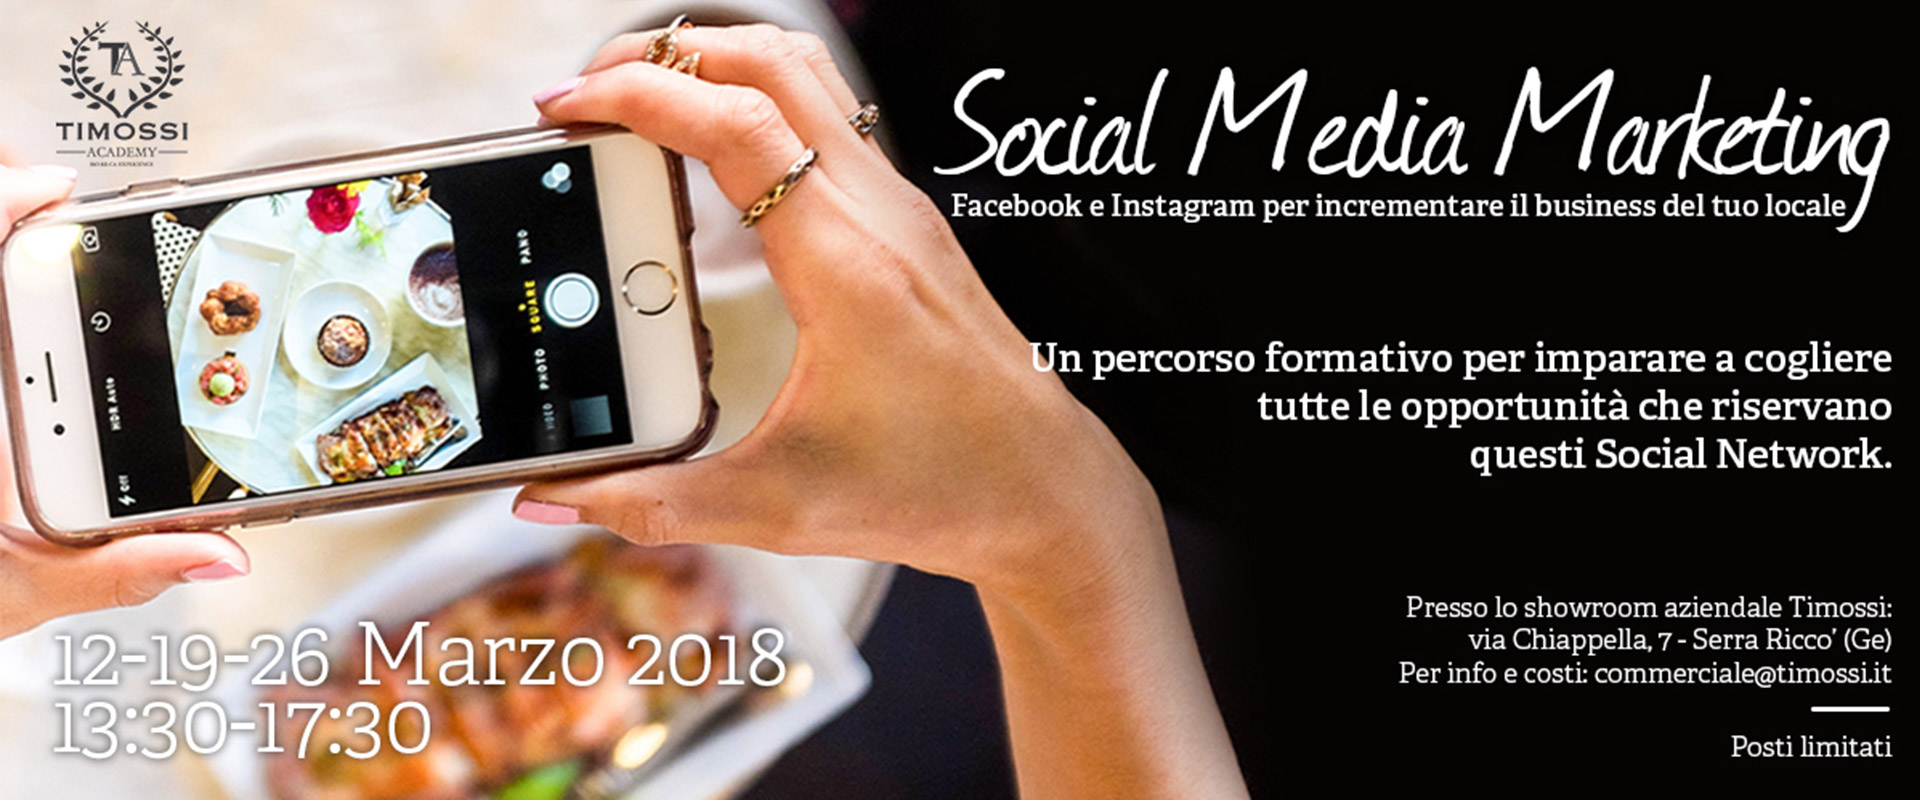 Social Media Marketing: Facebook e Instagram per incrementare il business del tuo locale!